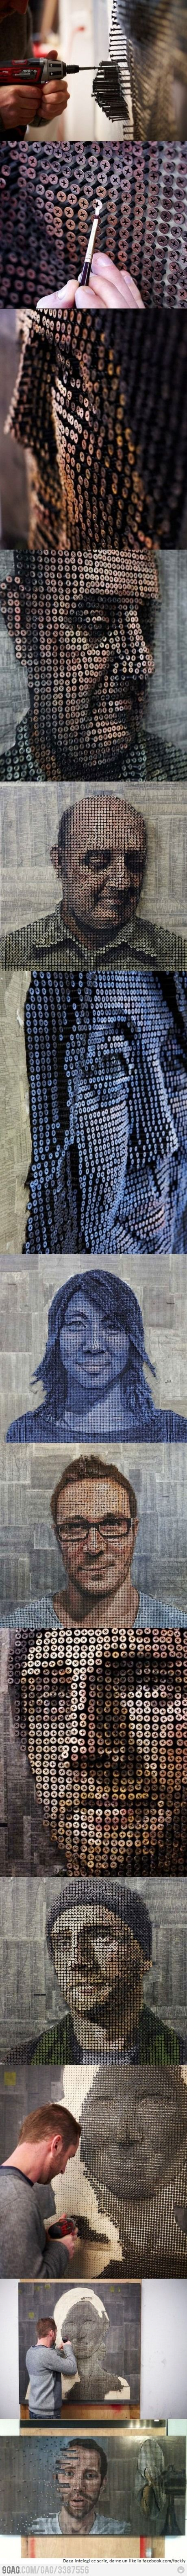 3D portraits made out of screws by Andrew Myers. Mindblown.